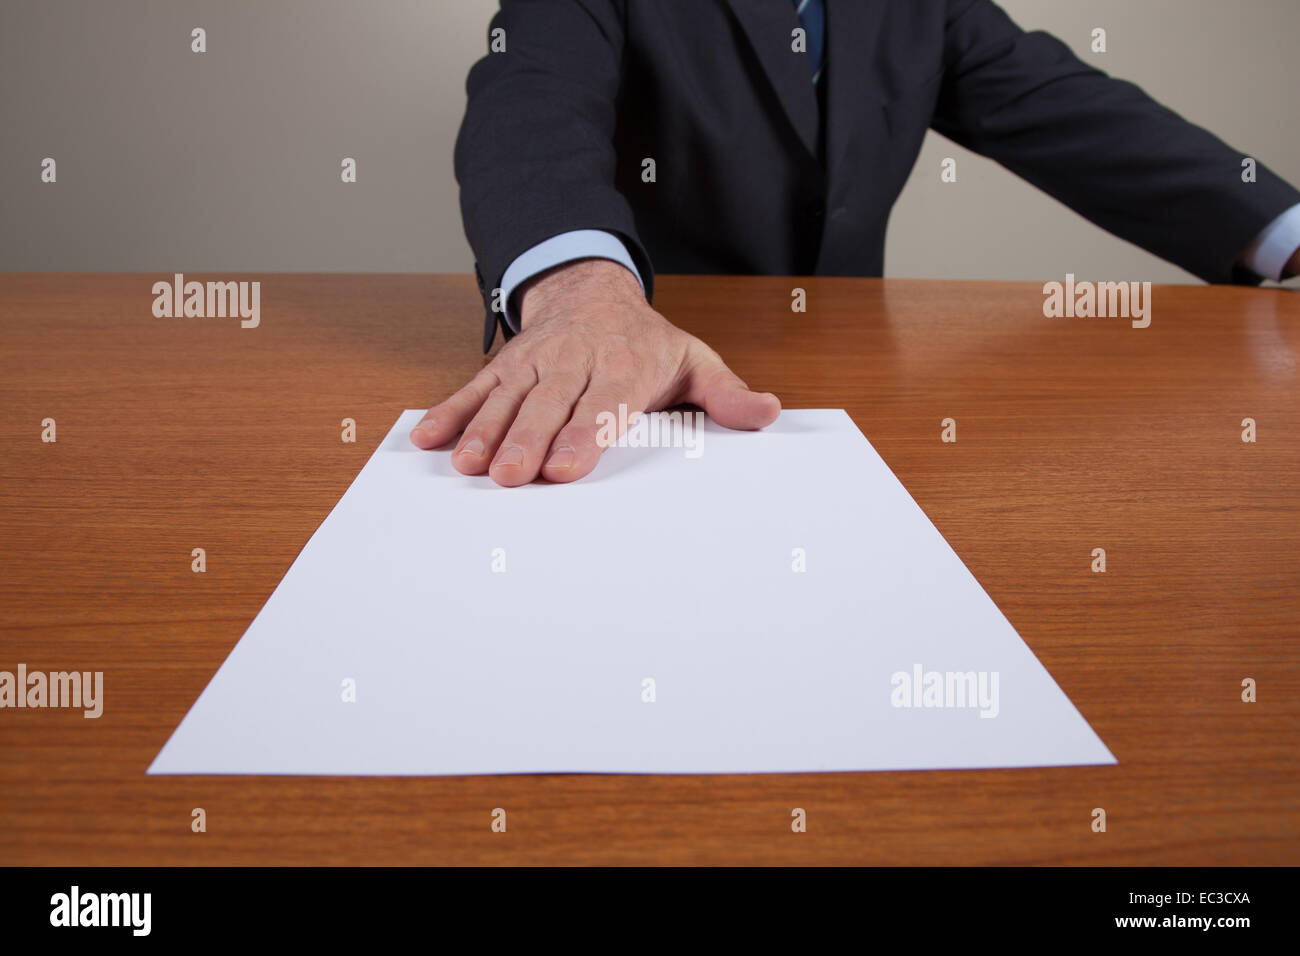 Men with one white sheet on the table. - Stock Image